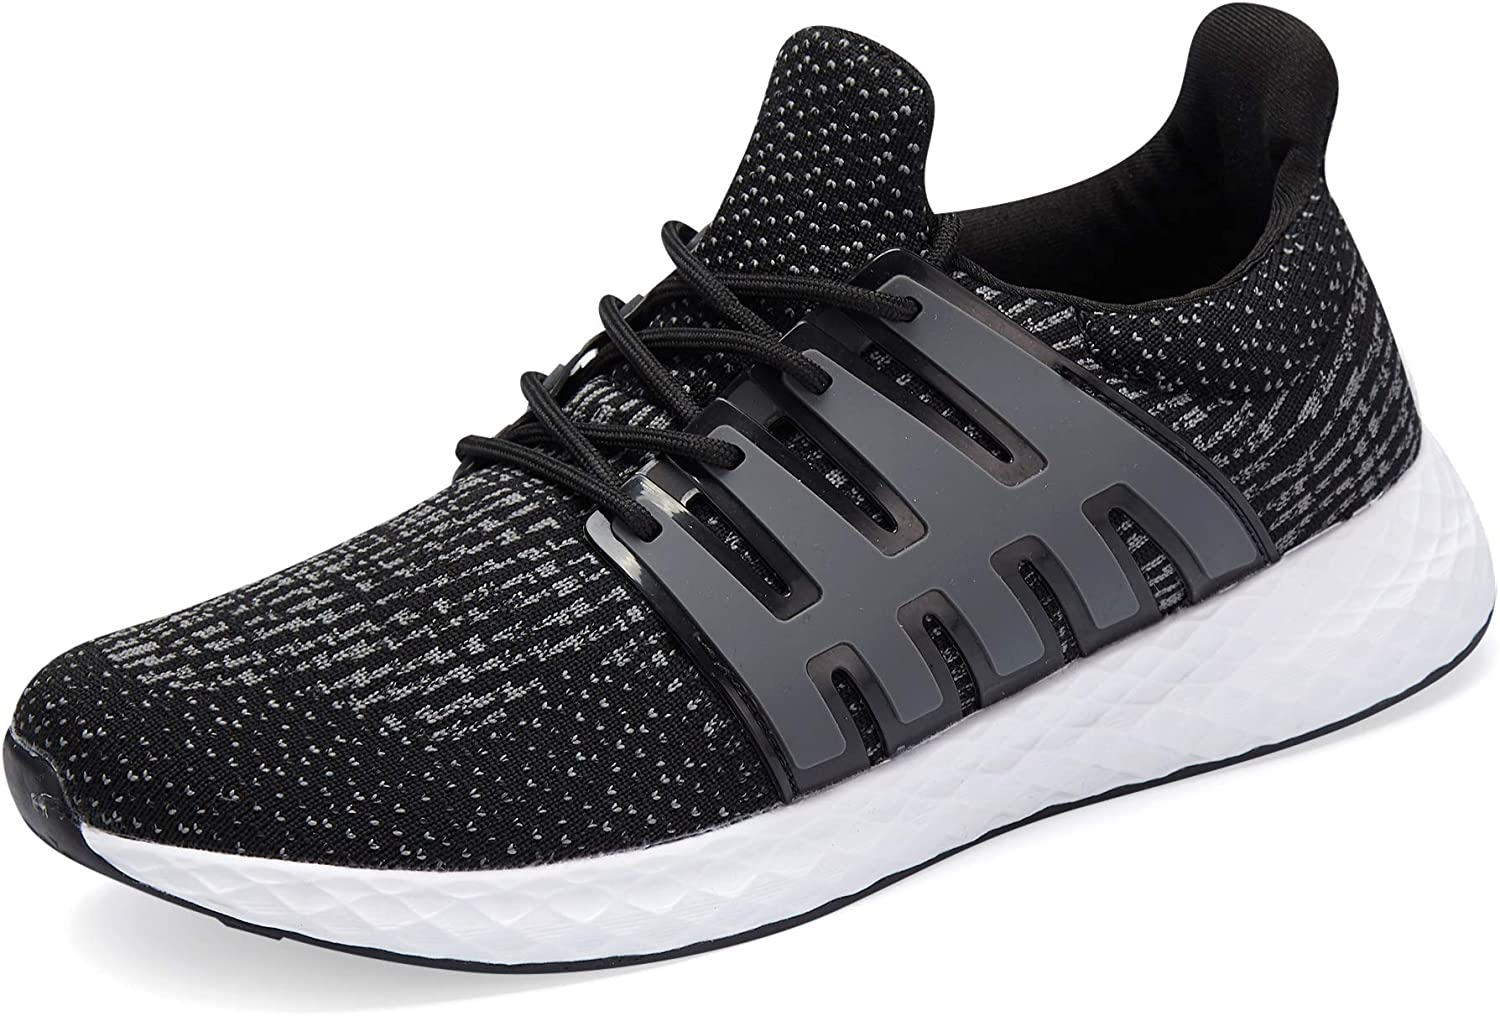 WXQ Men's Running shoes Fashion Breathable Sneakers Mesh Soft Sole Casual Athletic Lightweight Walking shoes Black 46